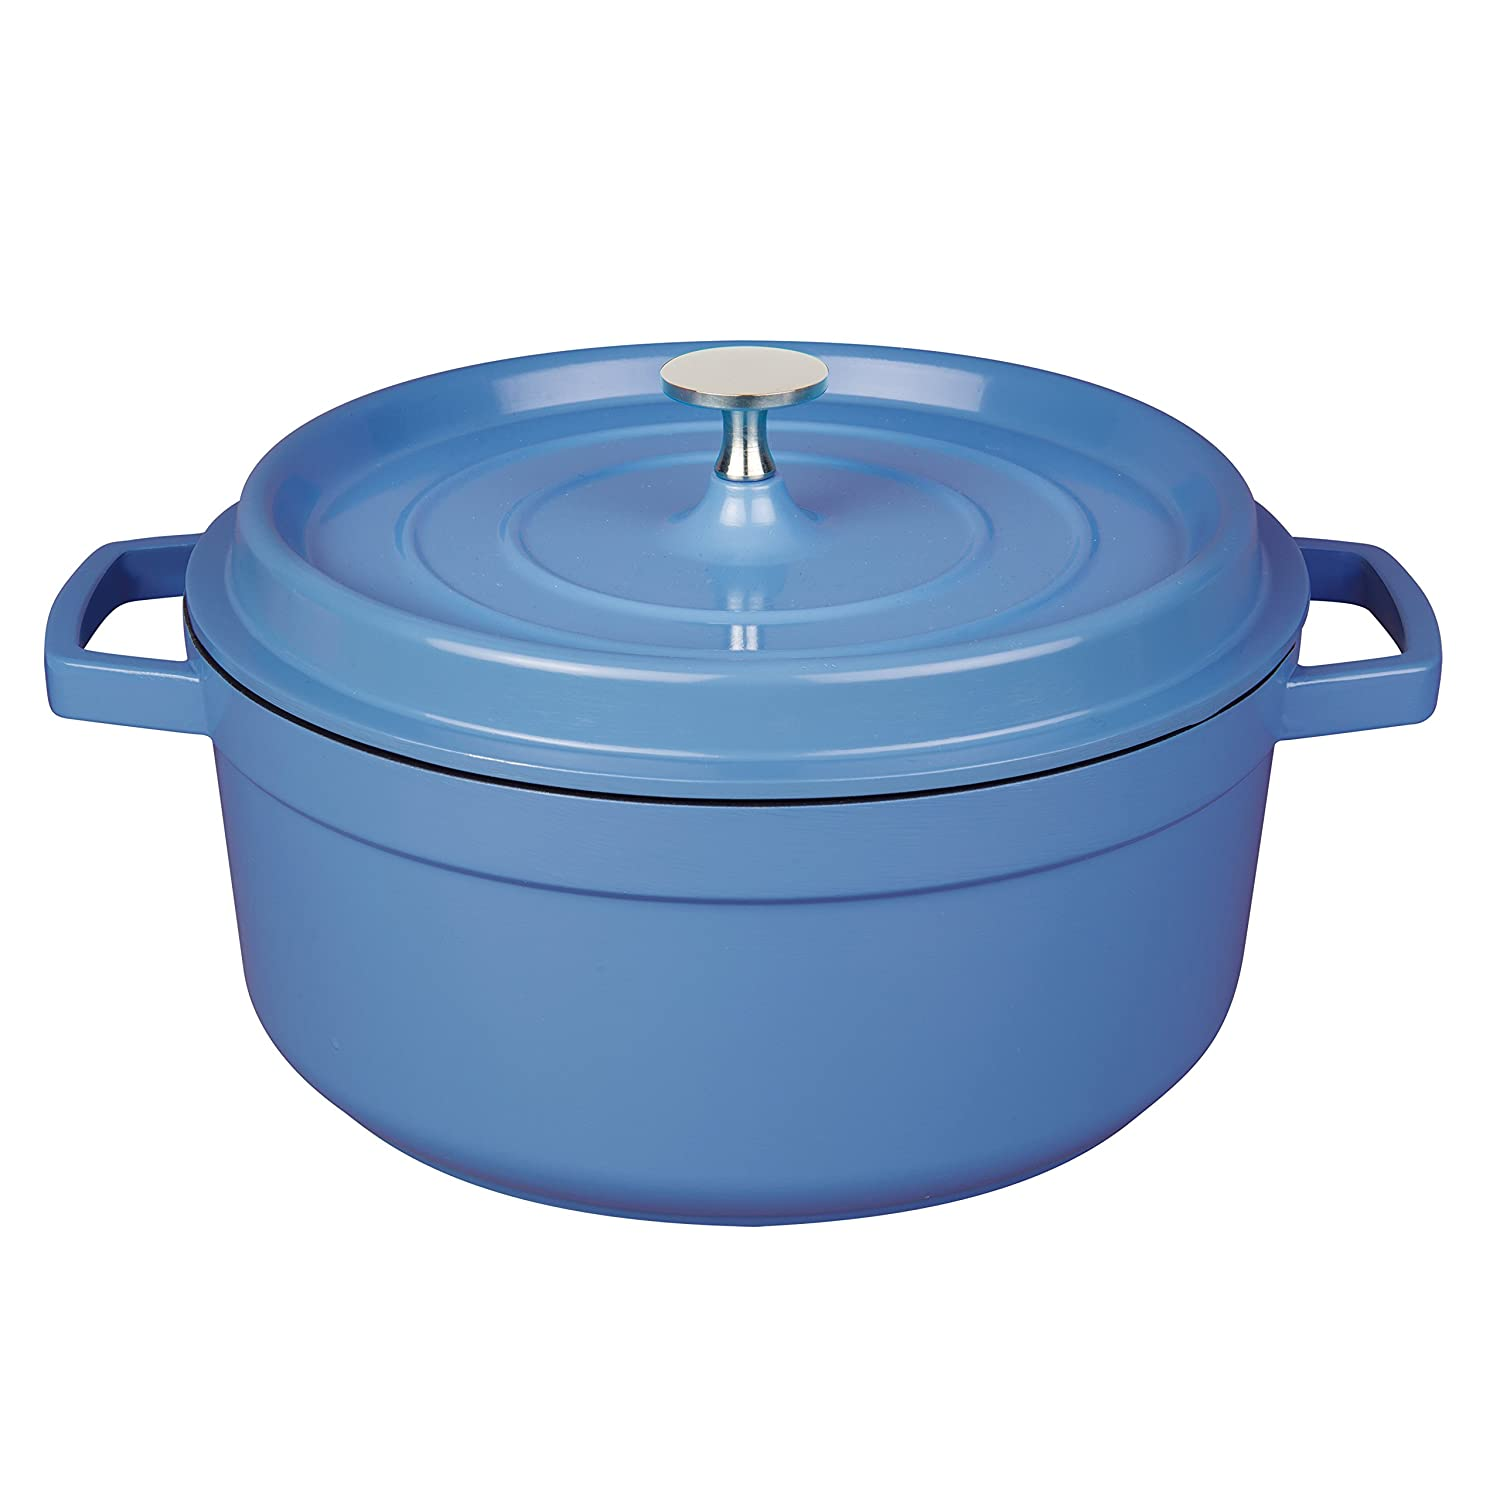 MasterPan 4QT Non-Stick Cast Aluminum Dutch Oven, 4 Quart,